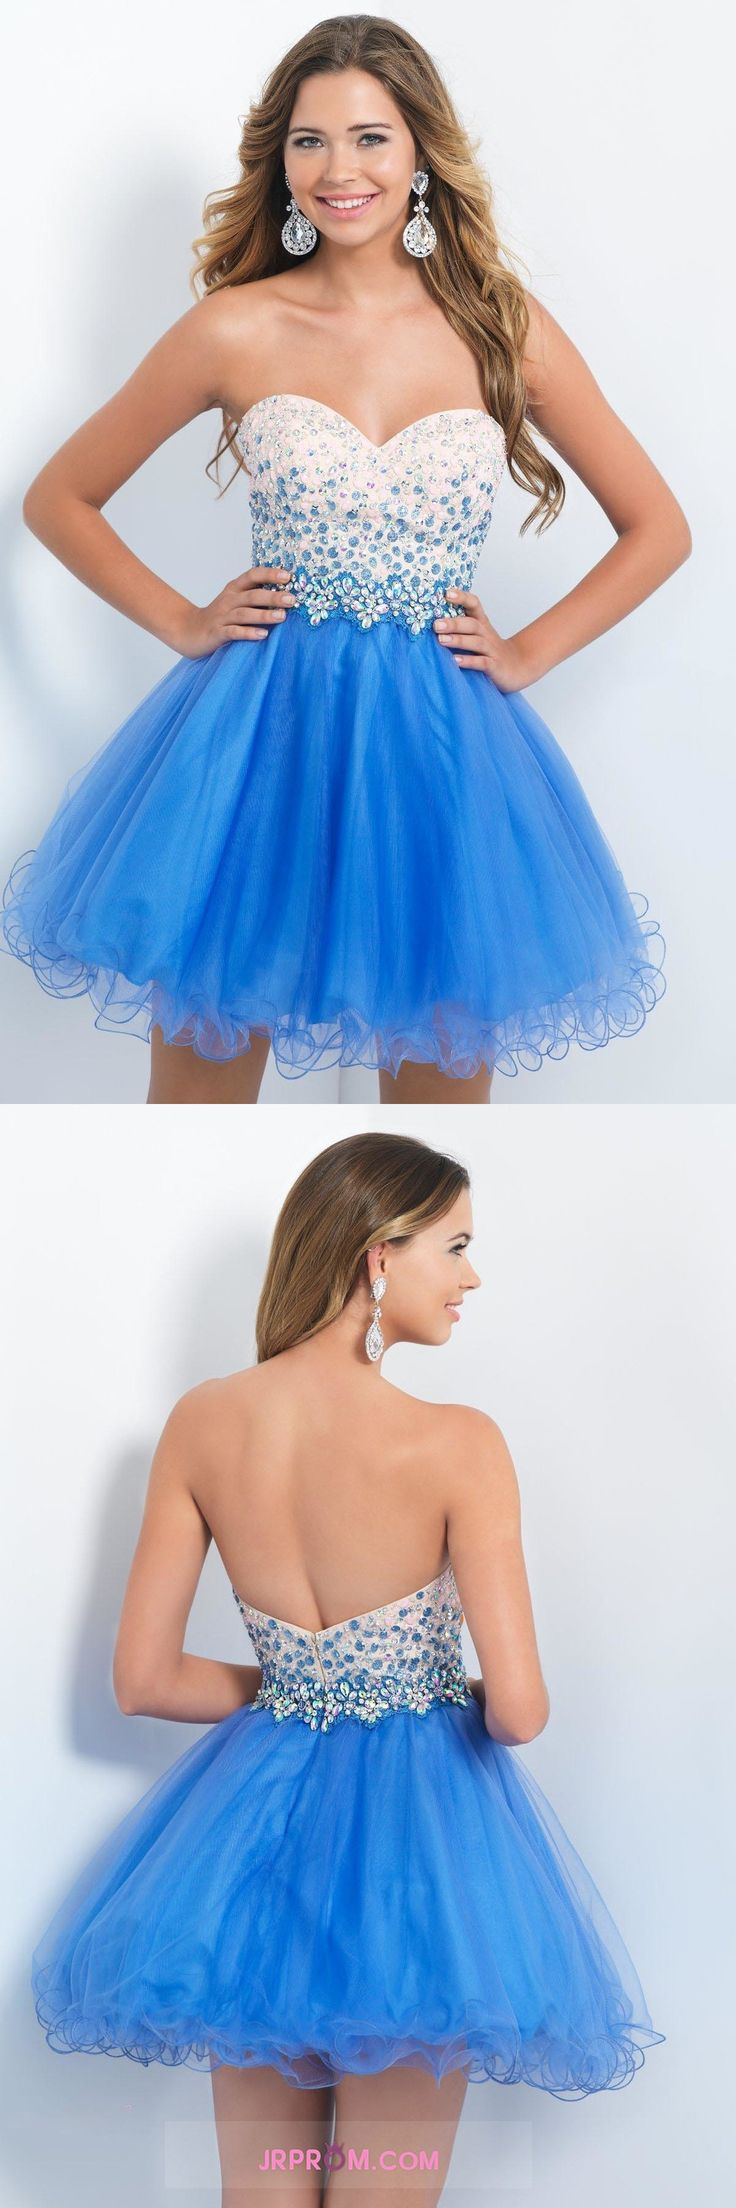 114 best Homecoming Dresses images on Pinterest | Financial ...